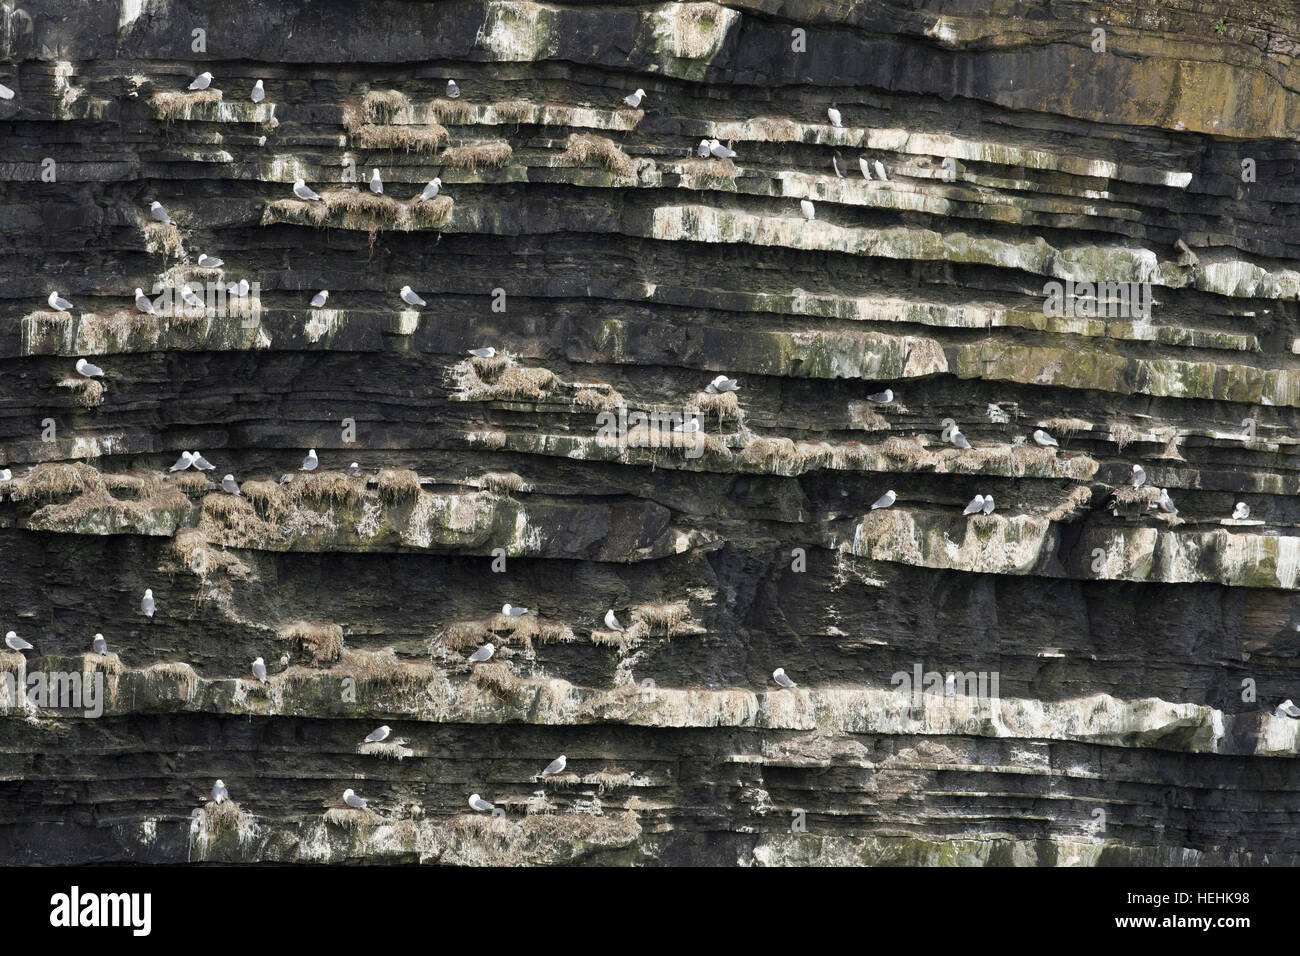 Kittiwake; Rissa tridactyla Colony; Porthmissen; Cornwall; UK - Stock Image